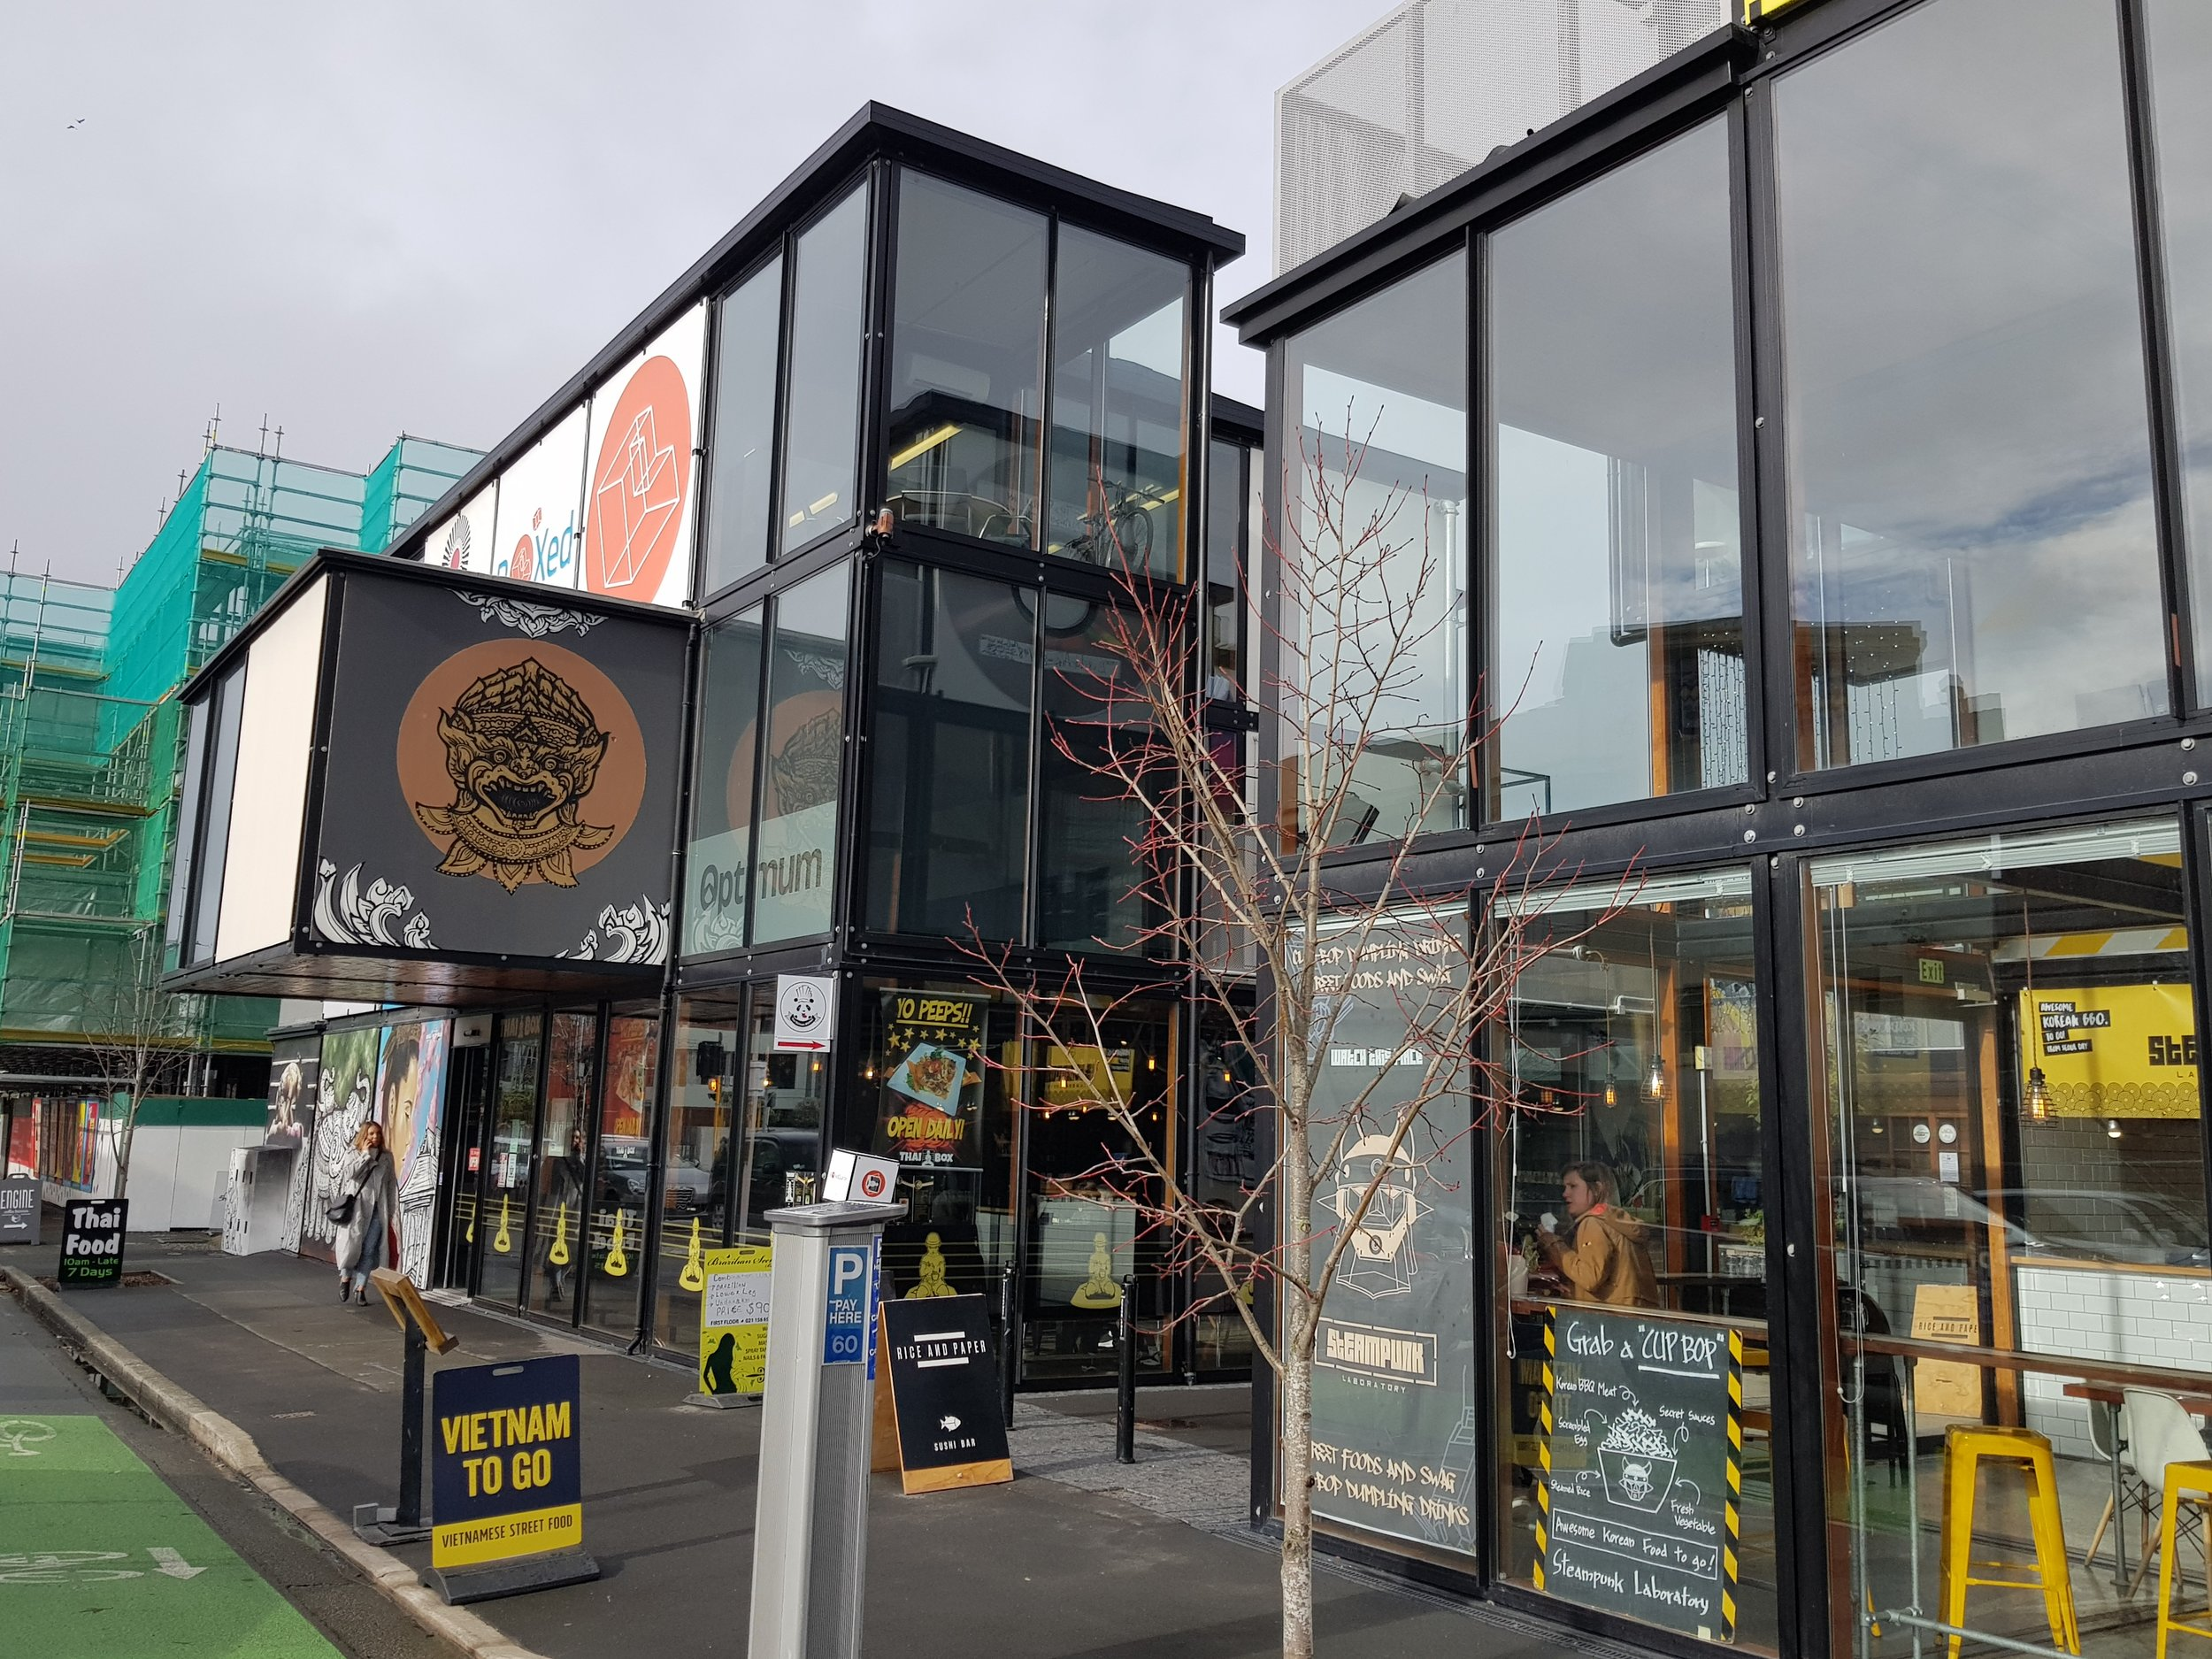 Boxed Quarter, 270 St Asaph Street, Christchurch